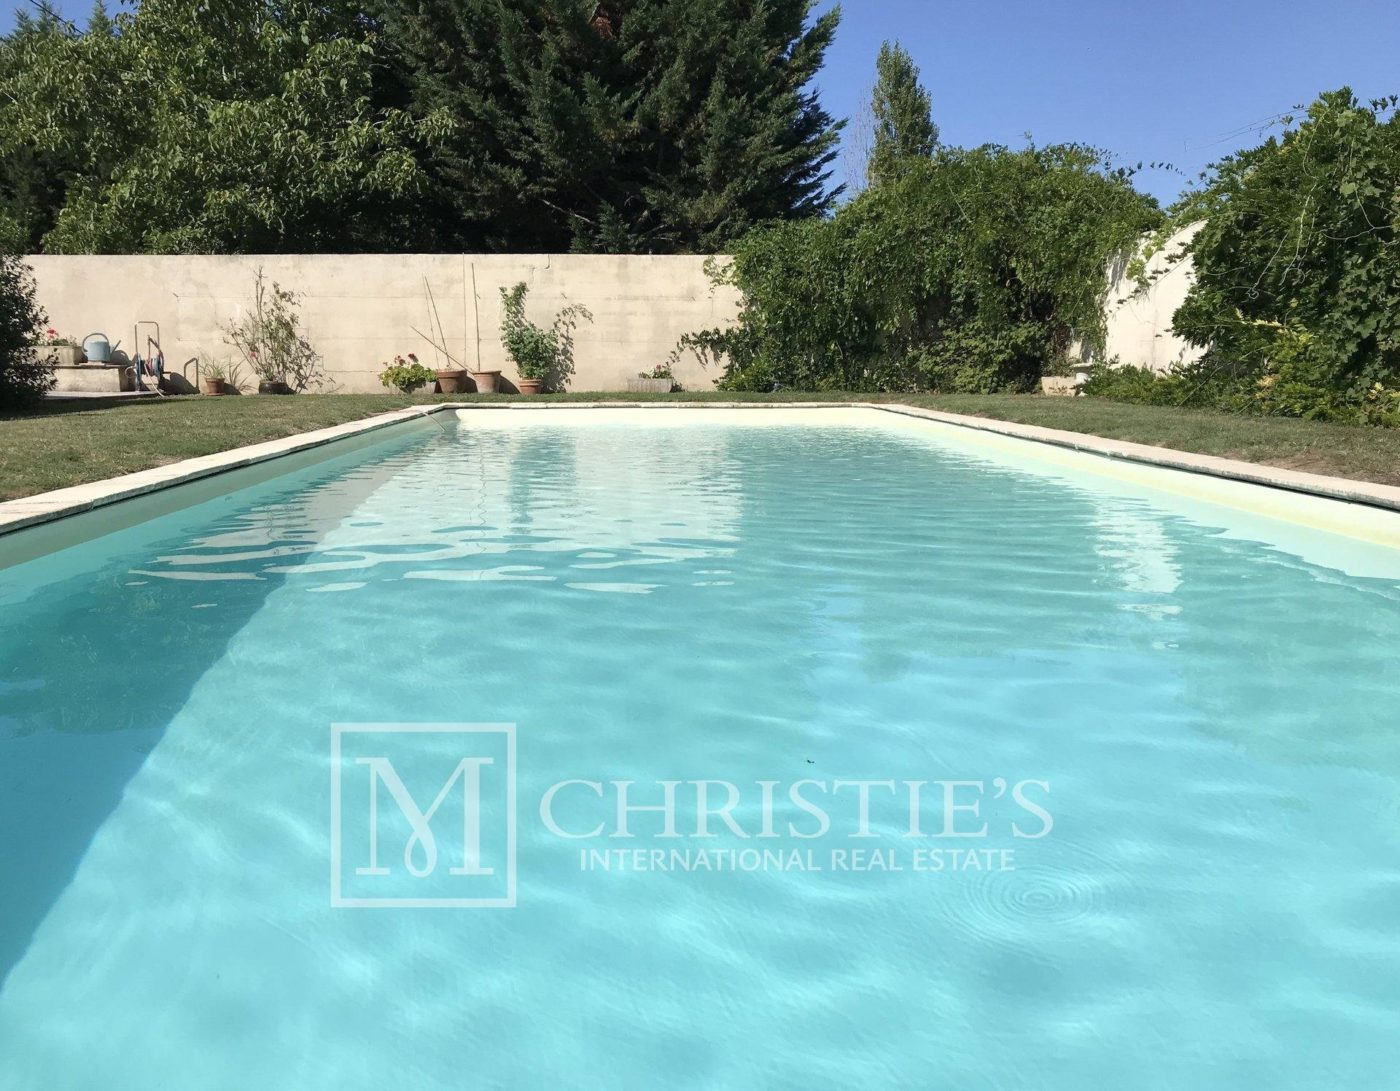 Swimming pool - Attractive AOC Côtes-de-Duras vineyard with residence, gîte and swimming pool